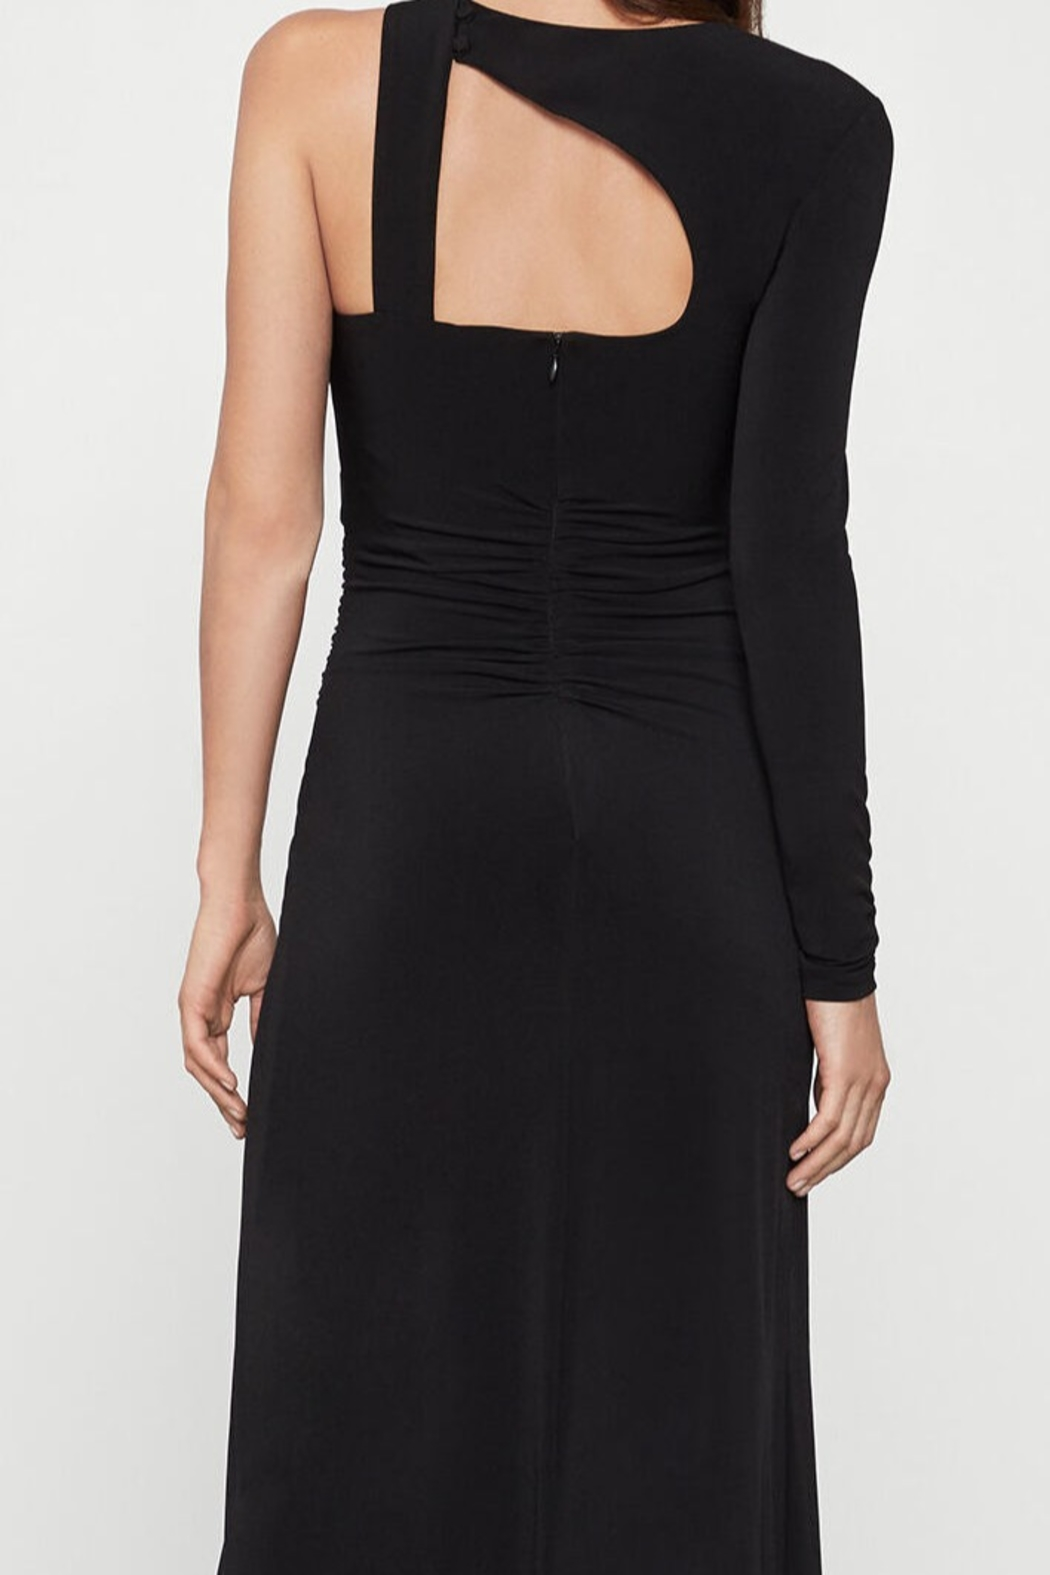 BCBG MAXAZRIA Single Sleeve Gown - Front Full Image